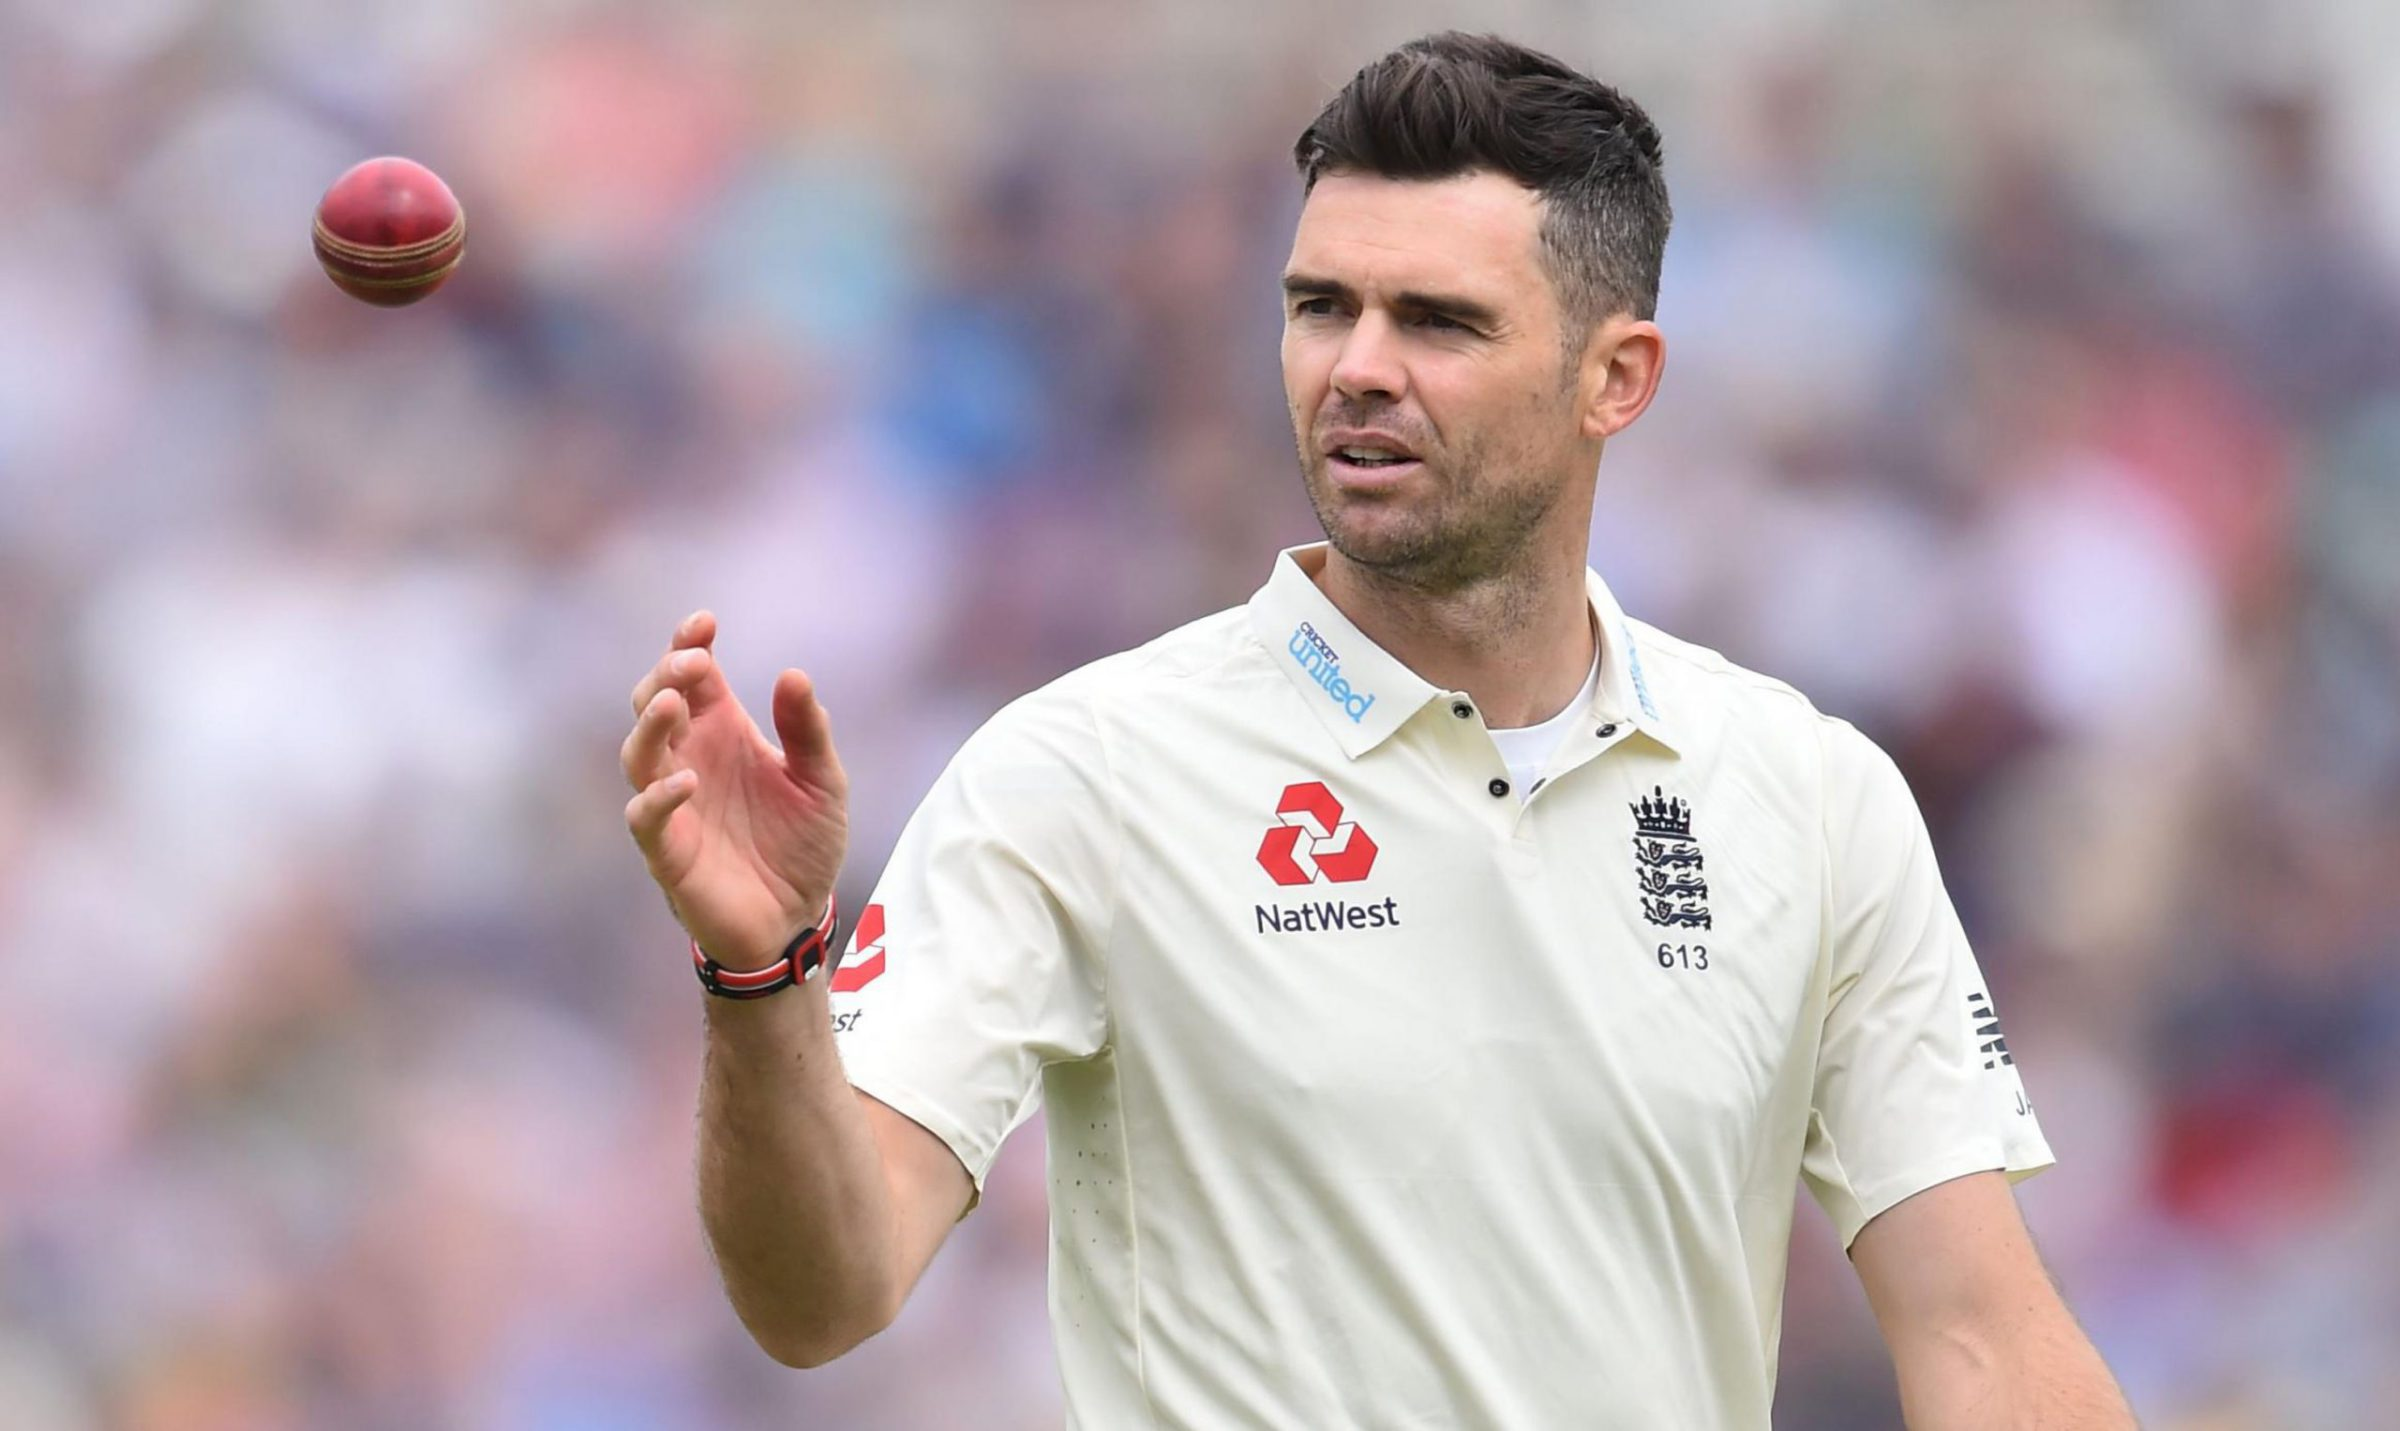 James Anderson diminished retirement's rumors. Image courtesy: EssentiallySports